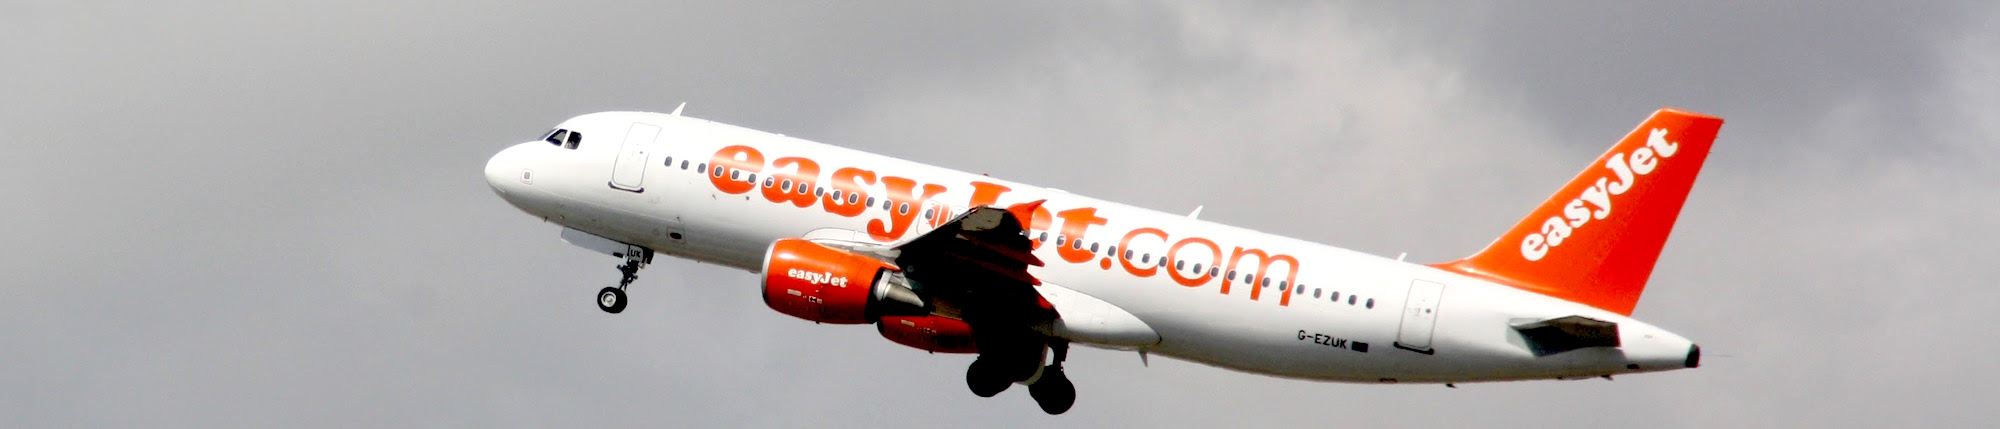 Best time to book flights for Munich (MUC) to Manchester (MAN) flights with EasyJet at AirHint